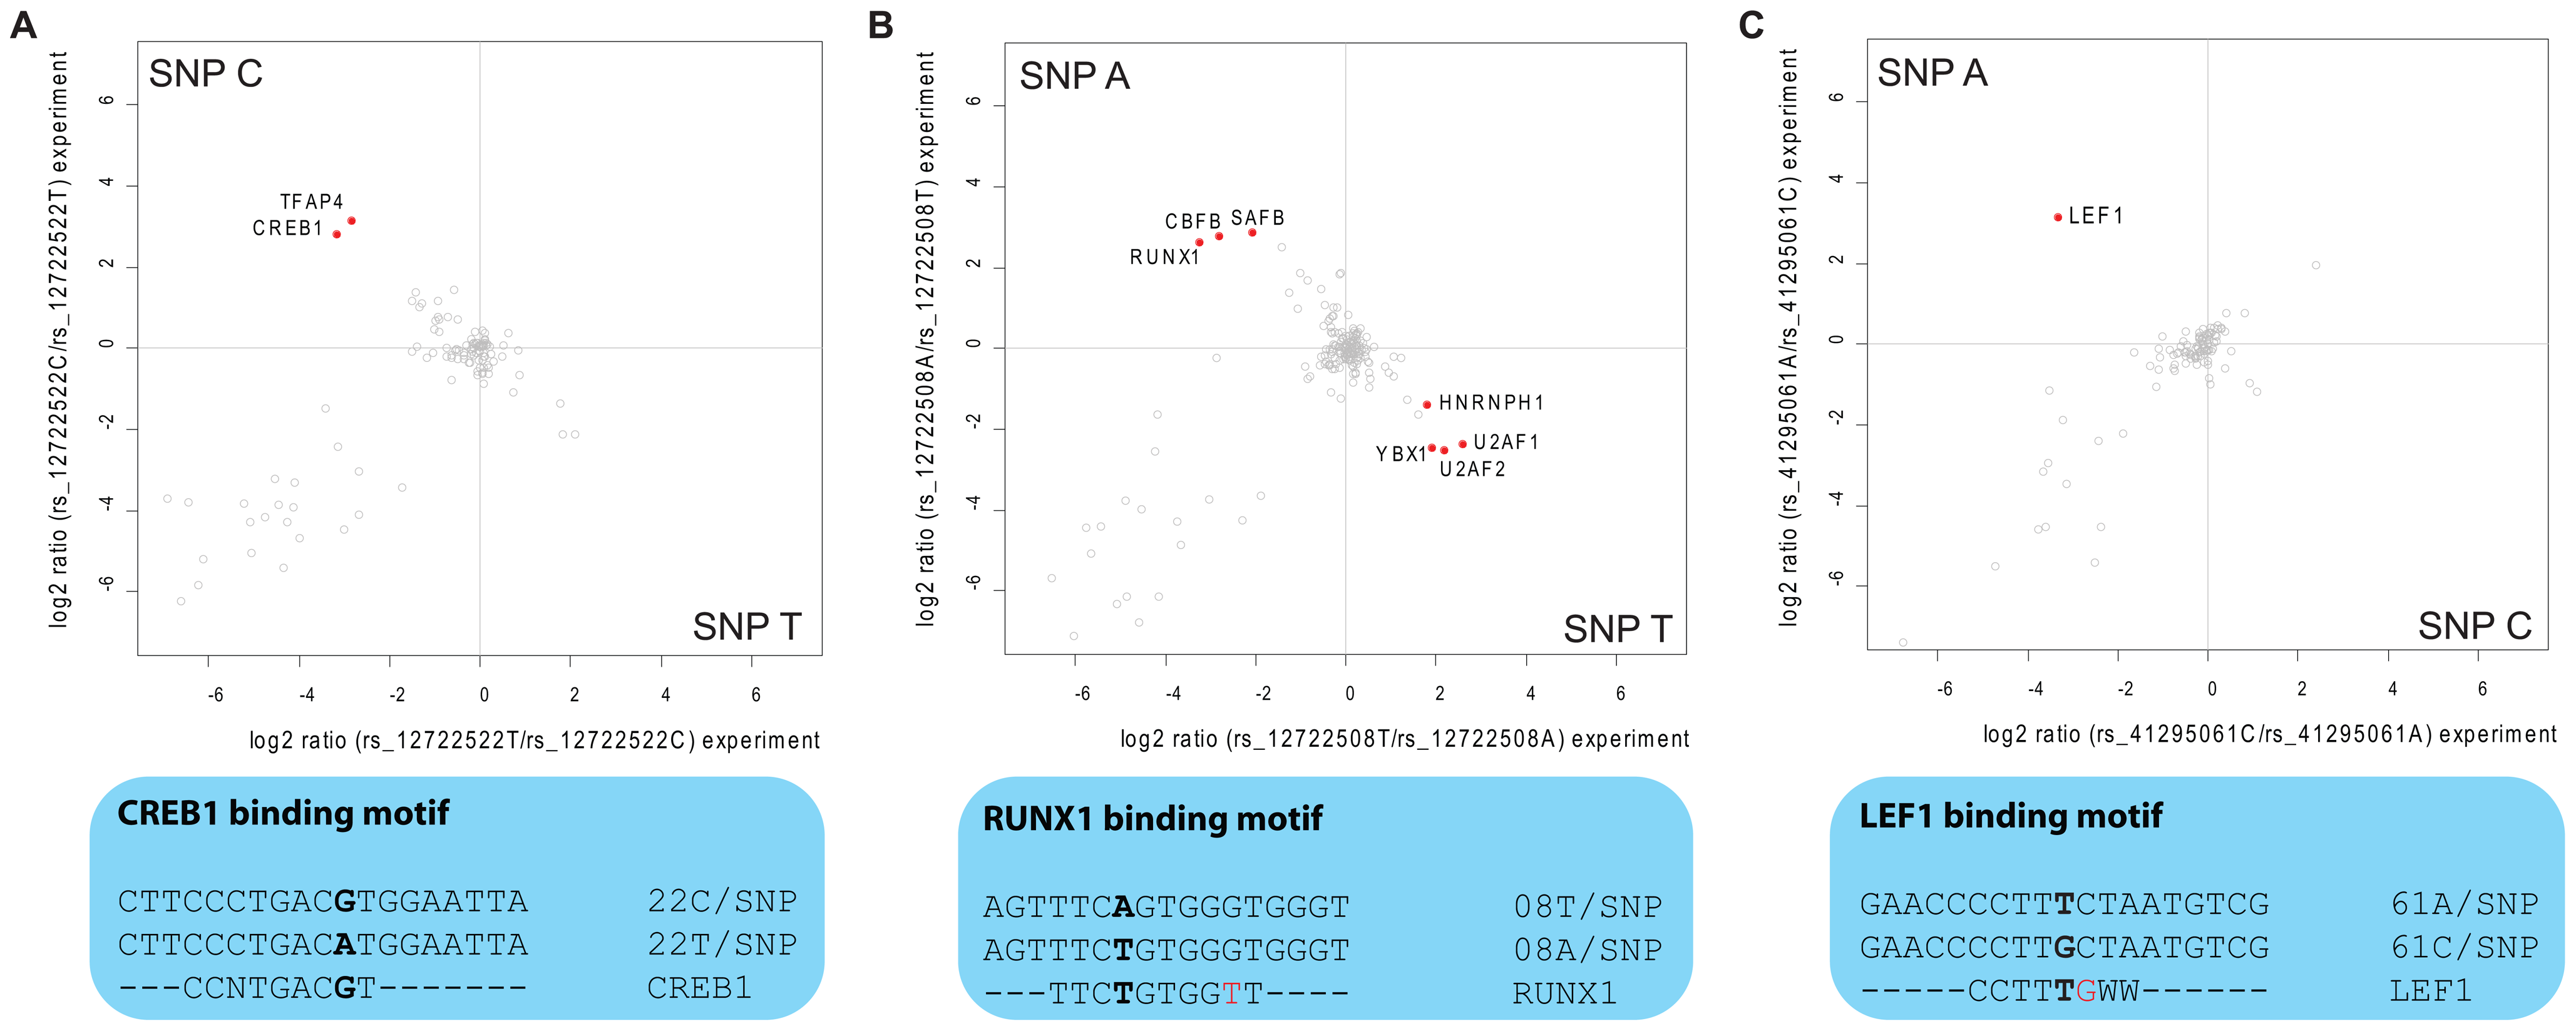 Interaction analysis for fine-mapped T1D SNPs.